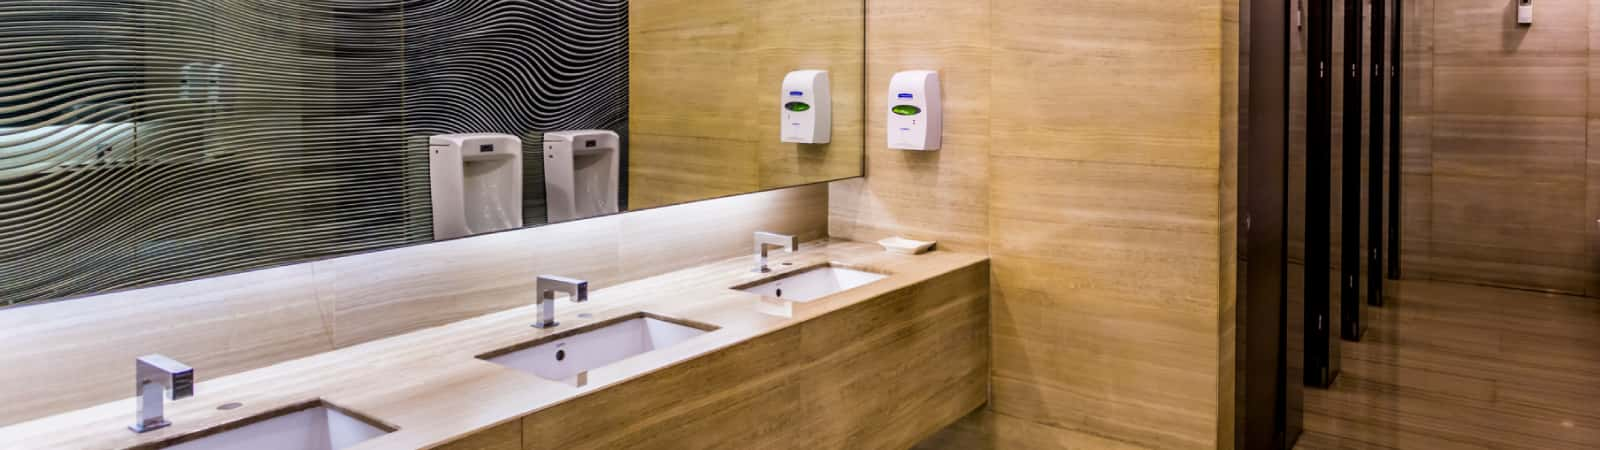 Smart Workplace Washrooms